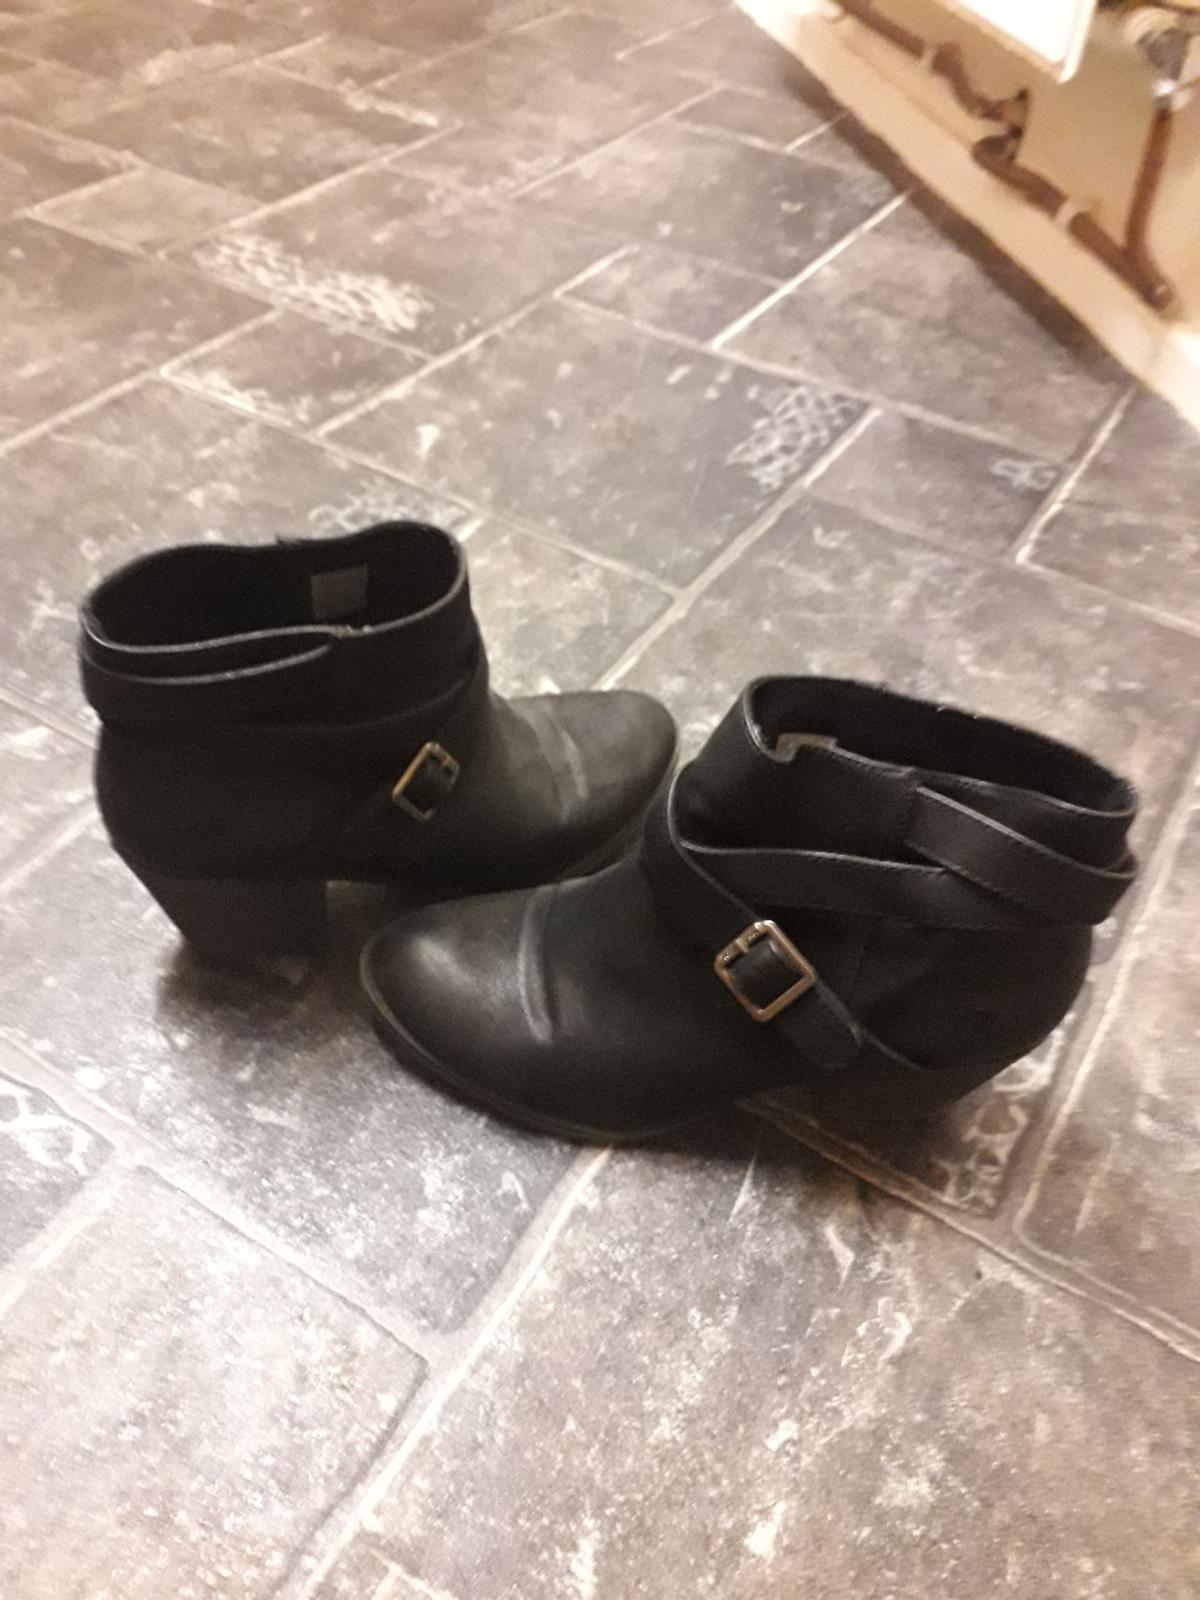 Black leather cuban heel boots. Good condition. Heel height: 3.5. Sole: Rubber. Very comfortable.